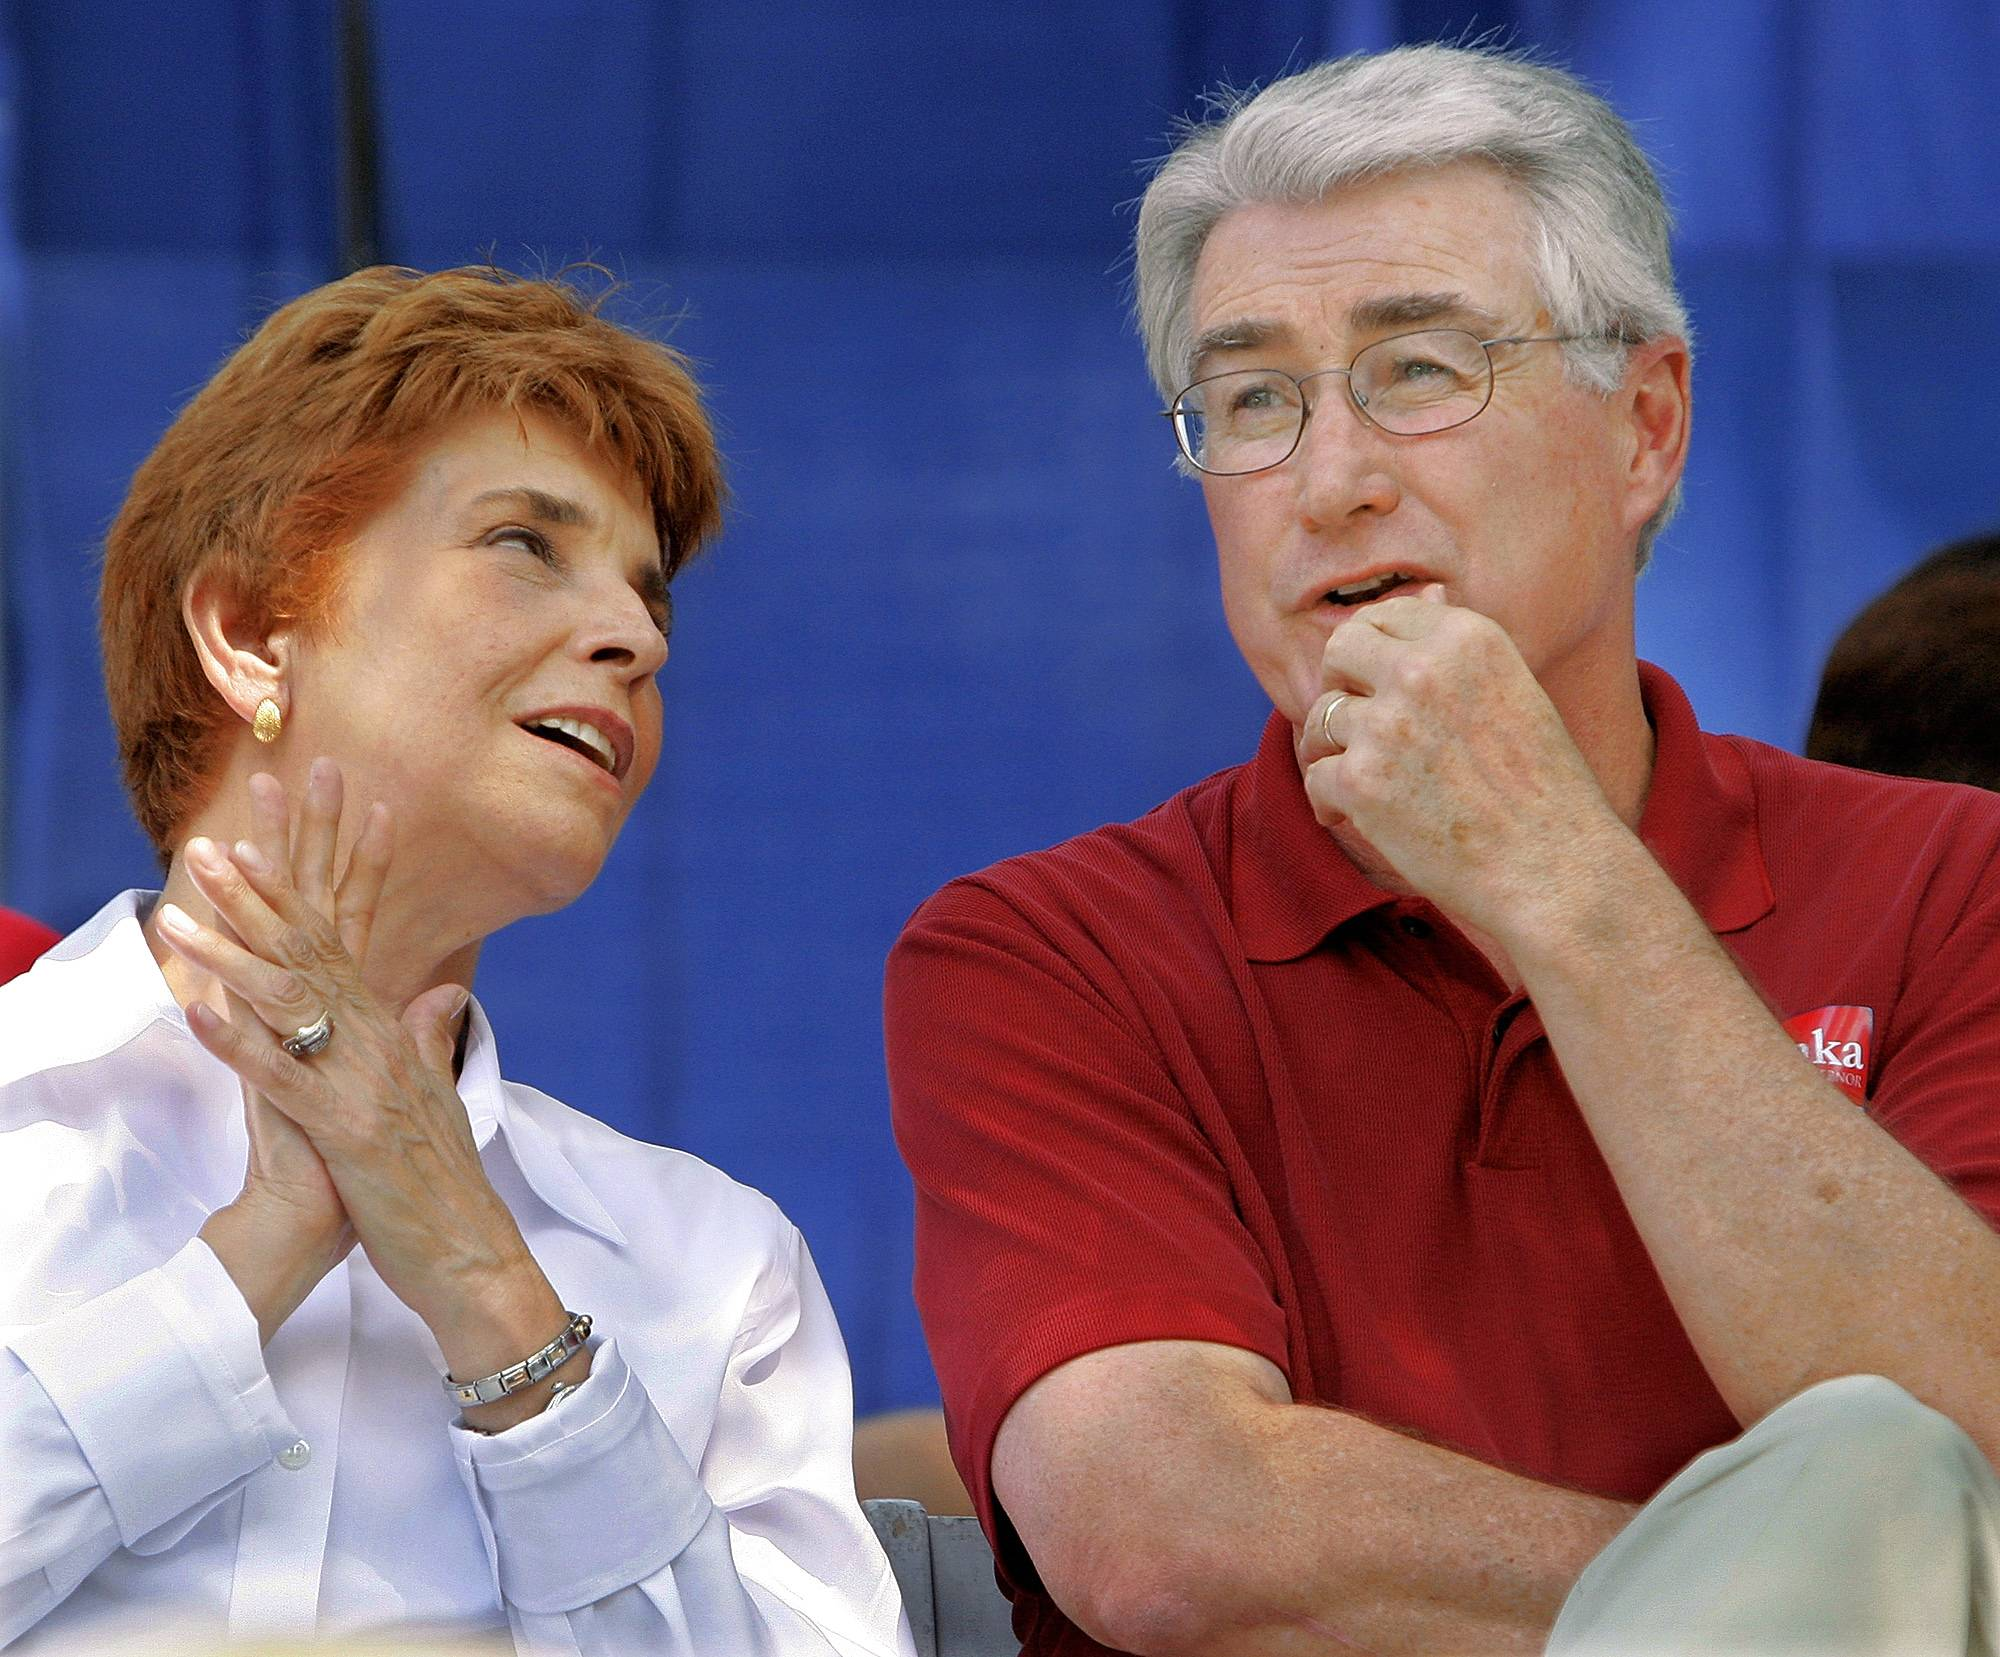 Jim Edgar says Topinka's '06 loss to Blagojevich 'the public's fault'